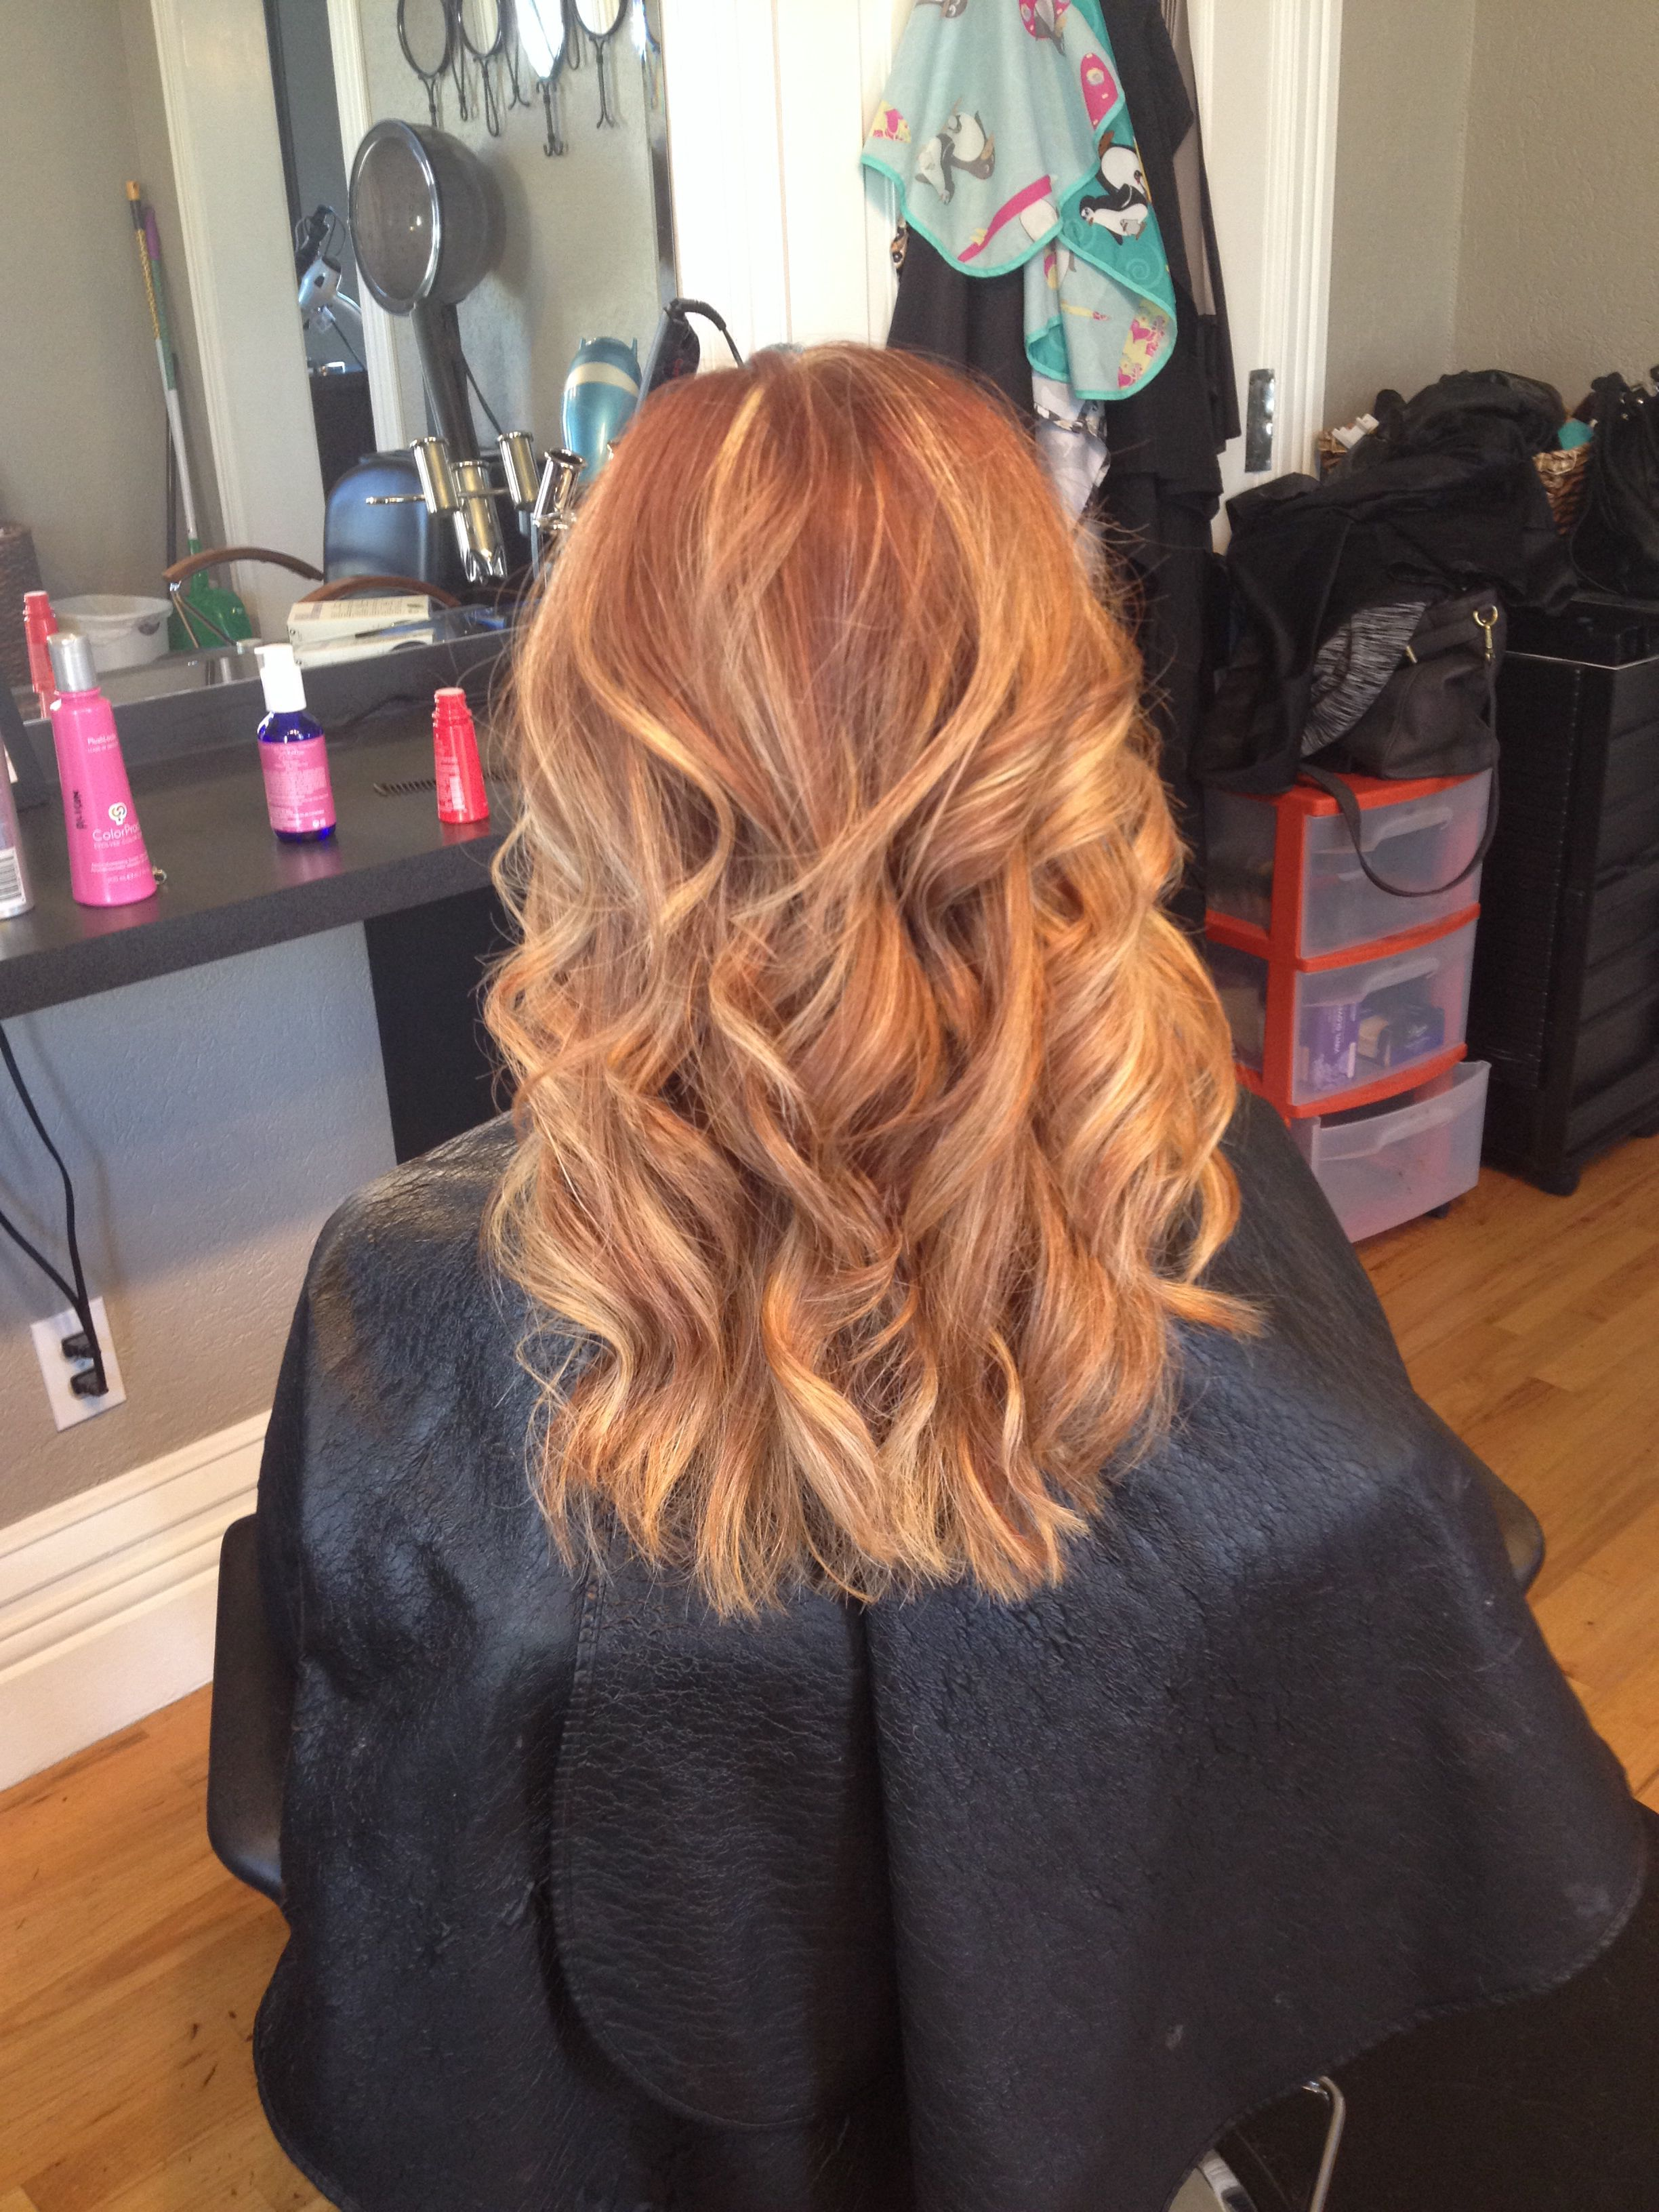 Highlights Blond Soft Blonde Highlights On Natural Red Hair With Beach